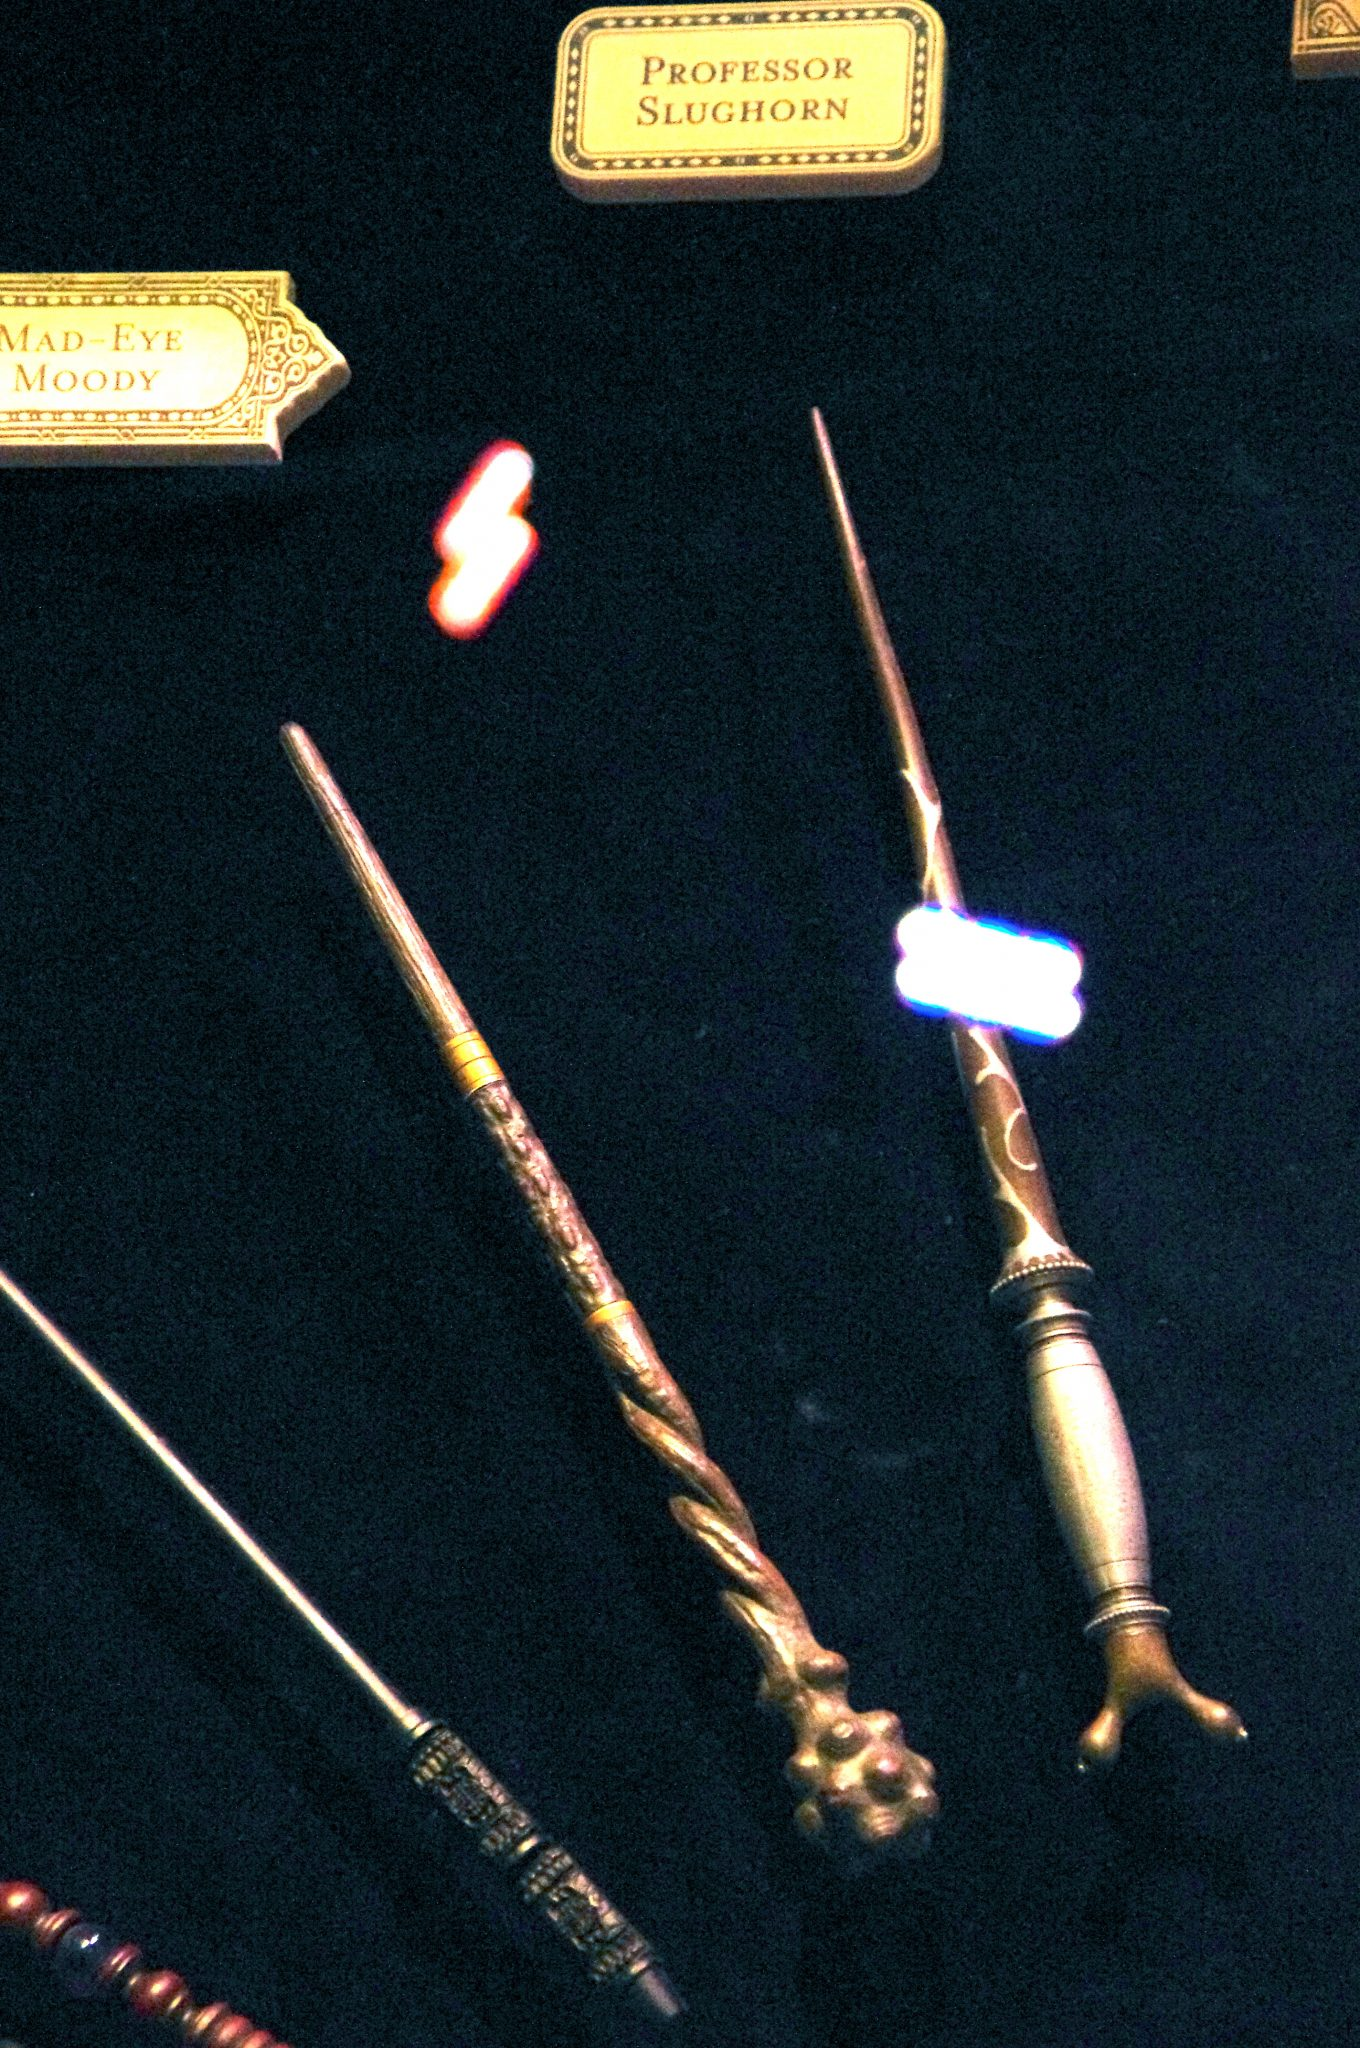 Mad eye moody wand images galleries for Light up elder wand